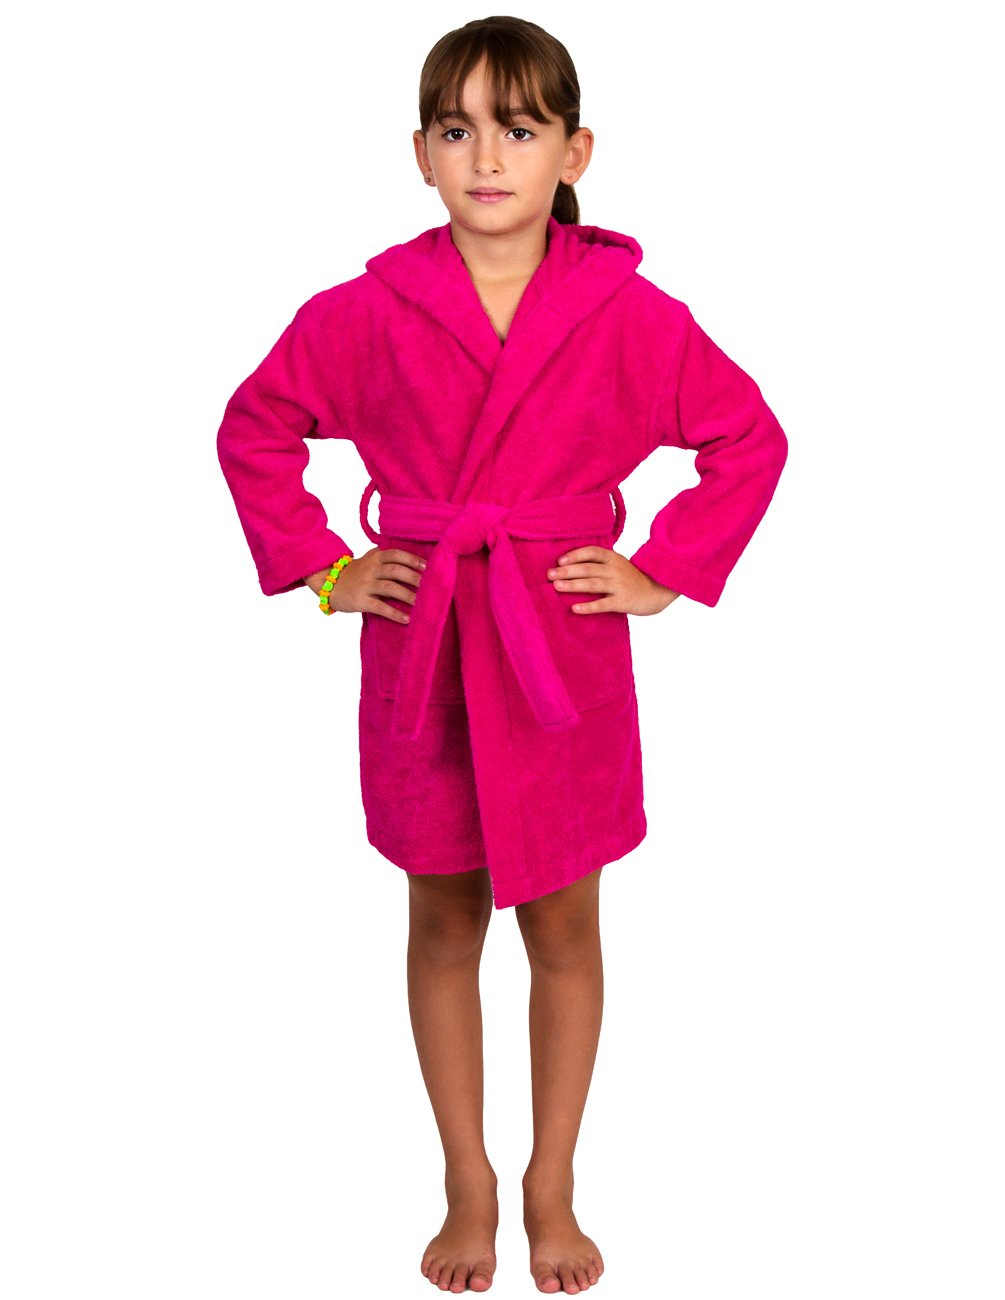 TowelSelections Hooded Kids Bathrobe - Terry Cloth Robe for Boys and Girls, 100% Egyptian Cotton, Made in Turkey, Pink, S/M